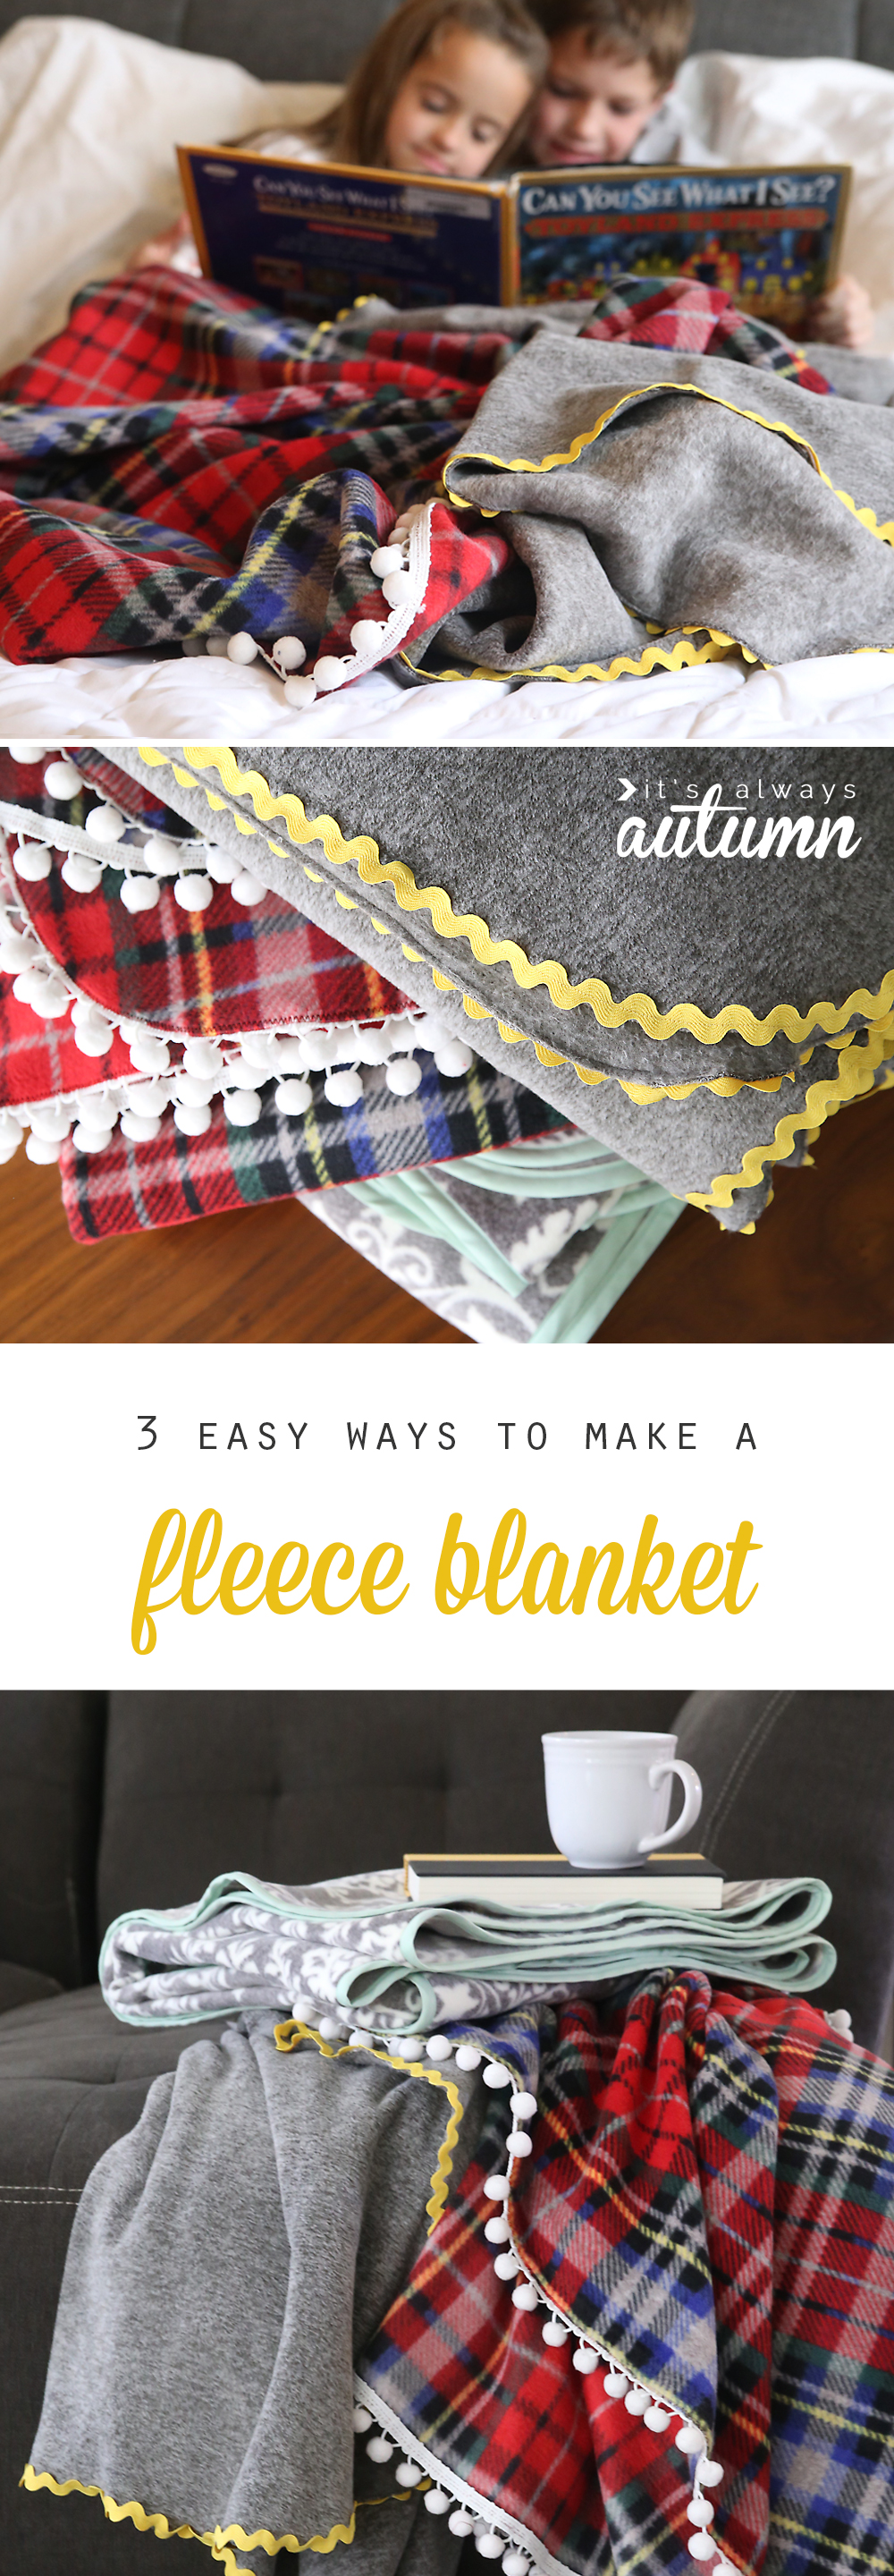 easy & beautiful DIY fleece blankets from It's Always Autumn